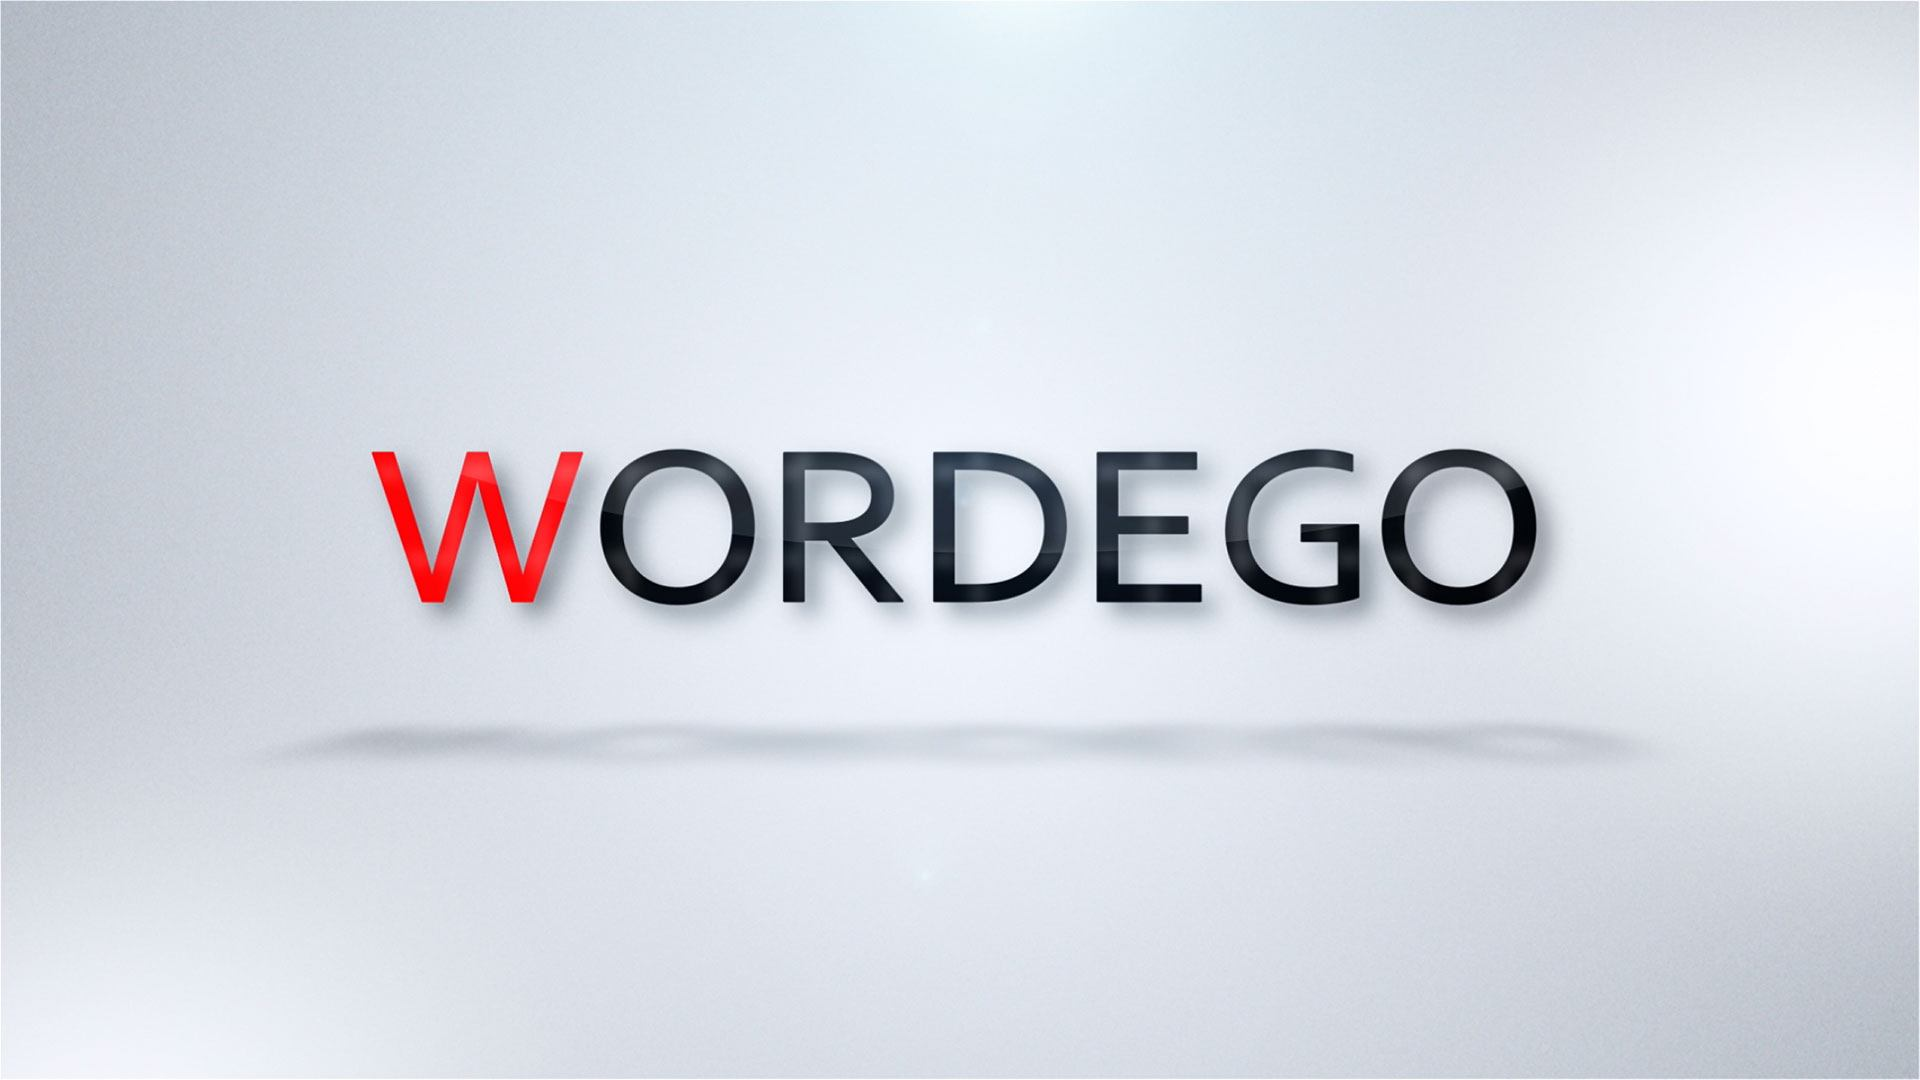 Wordego - Programmatic Ad Exchange Platform